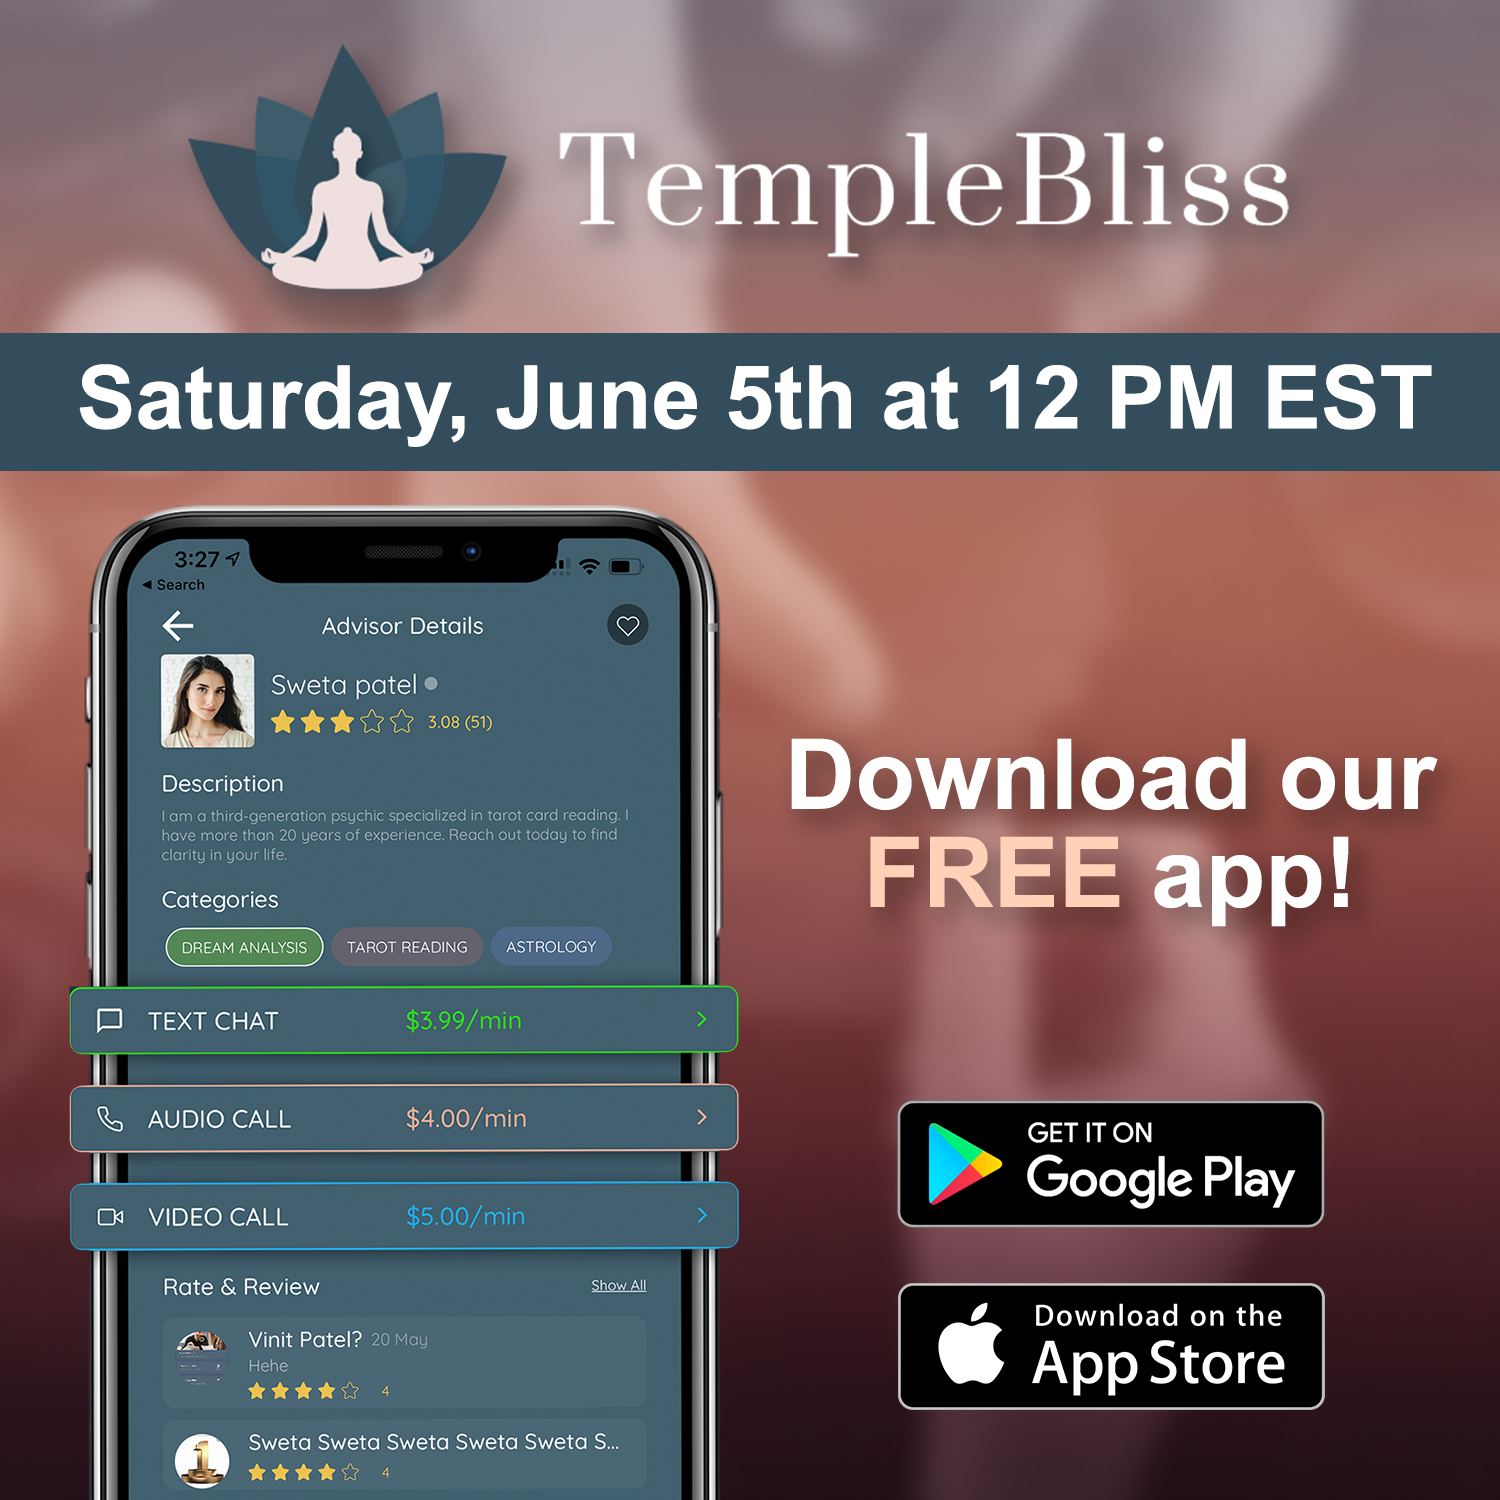 Temple Bliss Launches App for Finding the World's Best Spiritual Advisors and Psychics